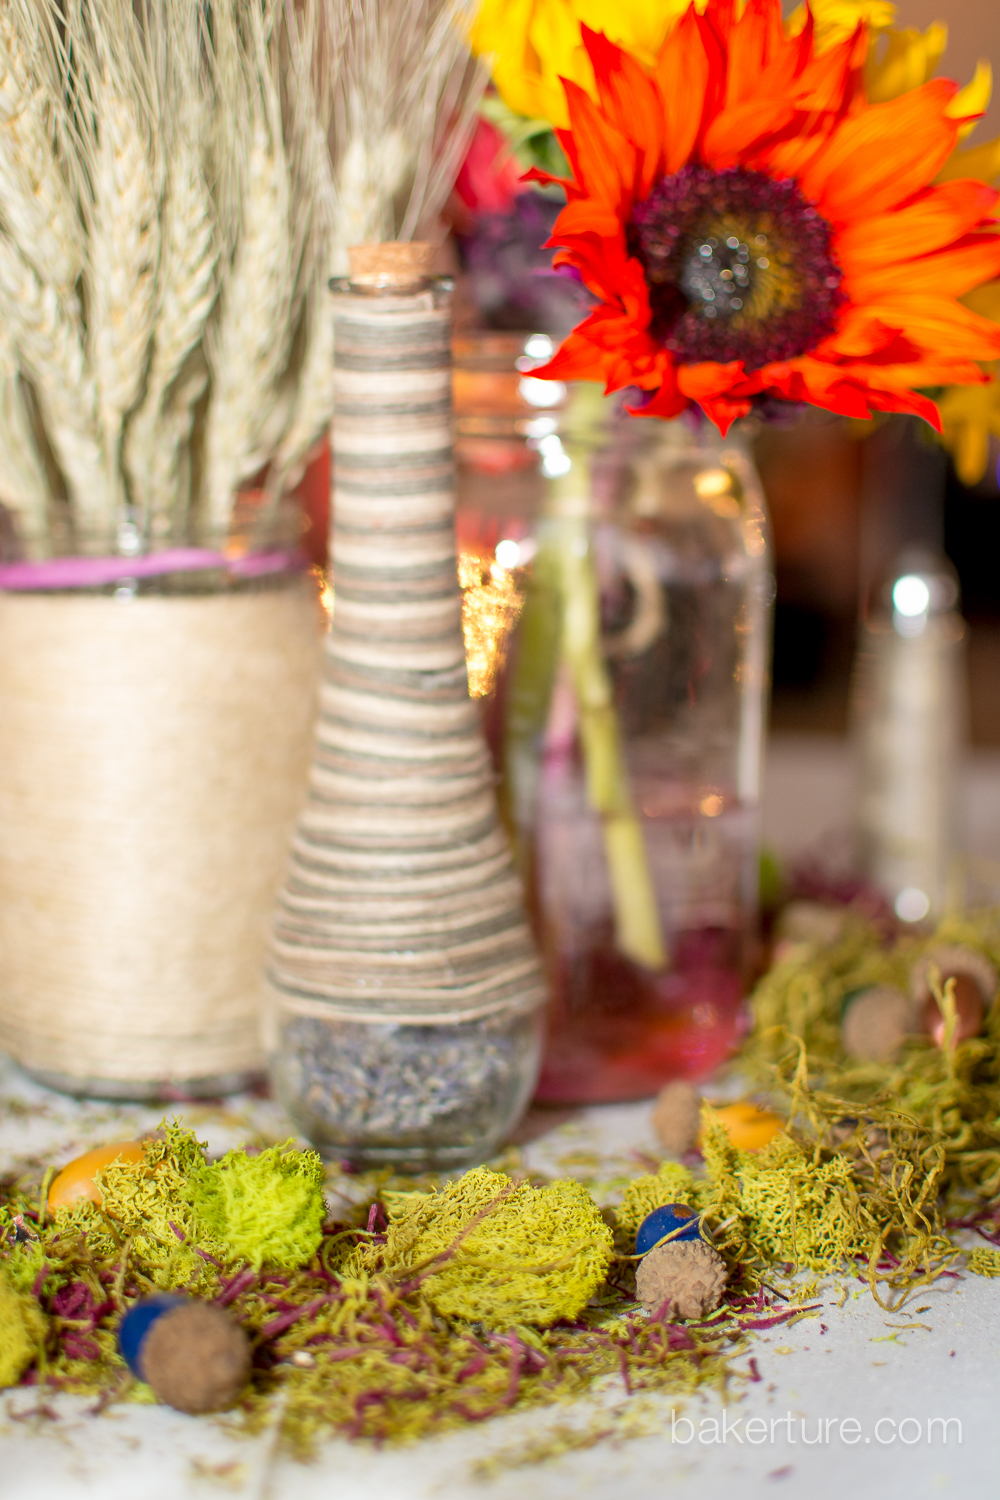 Walker's Overlook Wedding rustic hippy centerpiece flower reception Photo